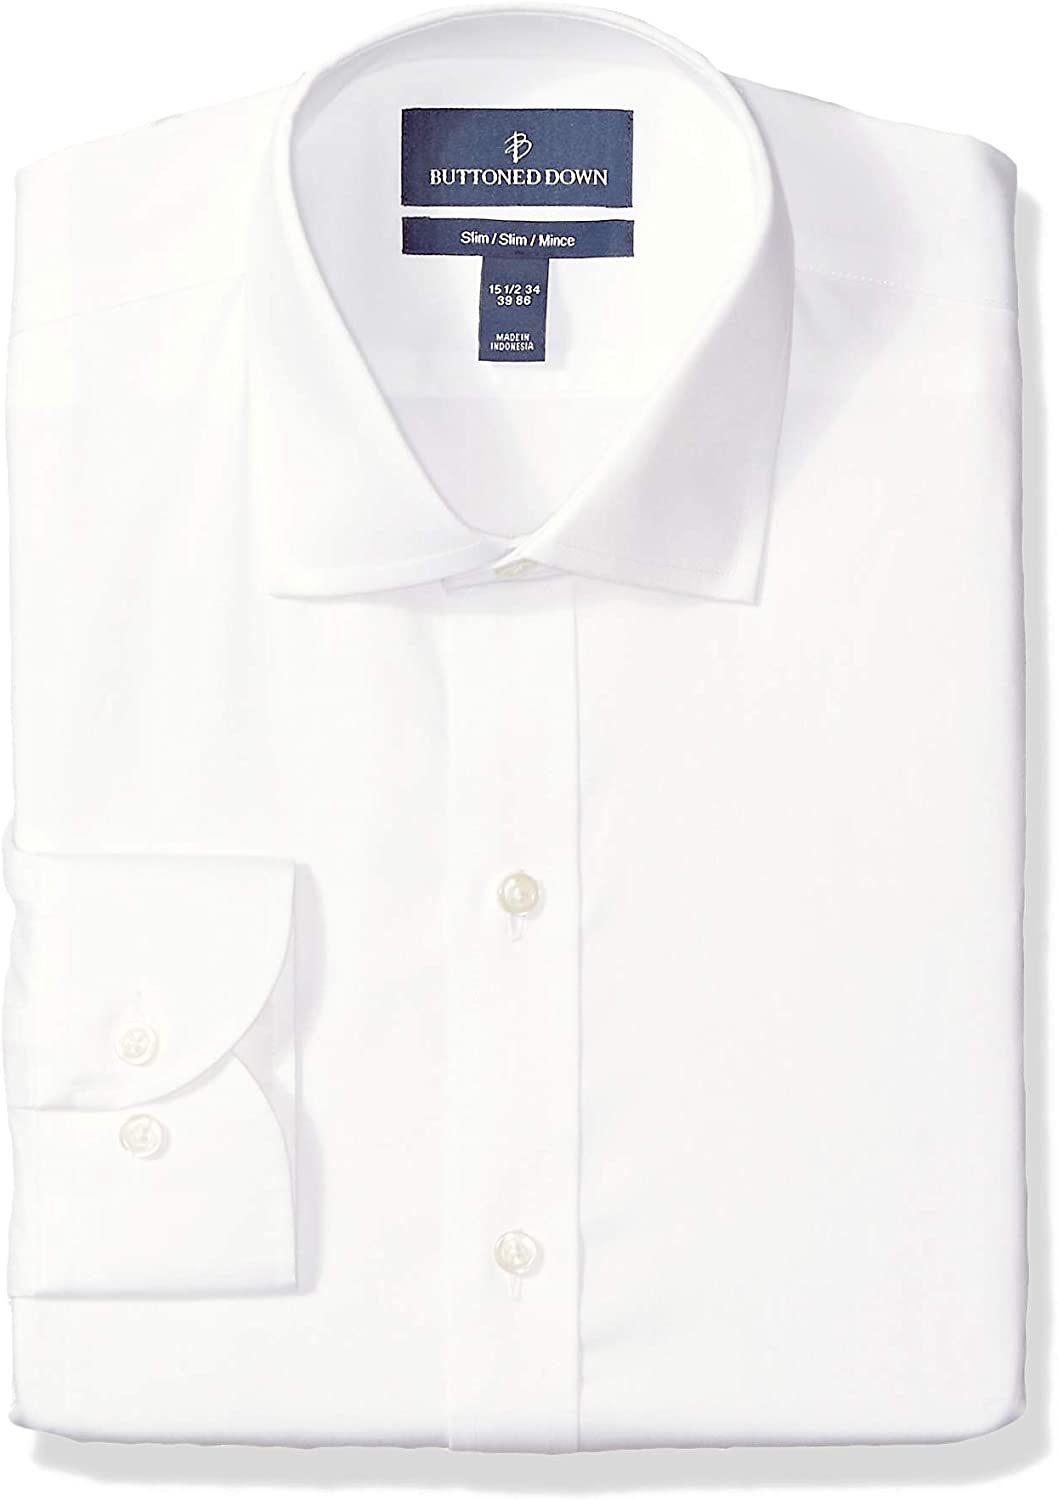 Amazon Brand - BUTTONED DOWN Men's Classic Fit Micro Twill Dress Shirt, Supima Cotton Non-Iron, Spread-Collar